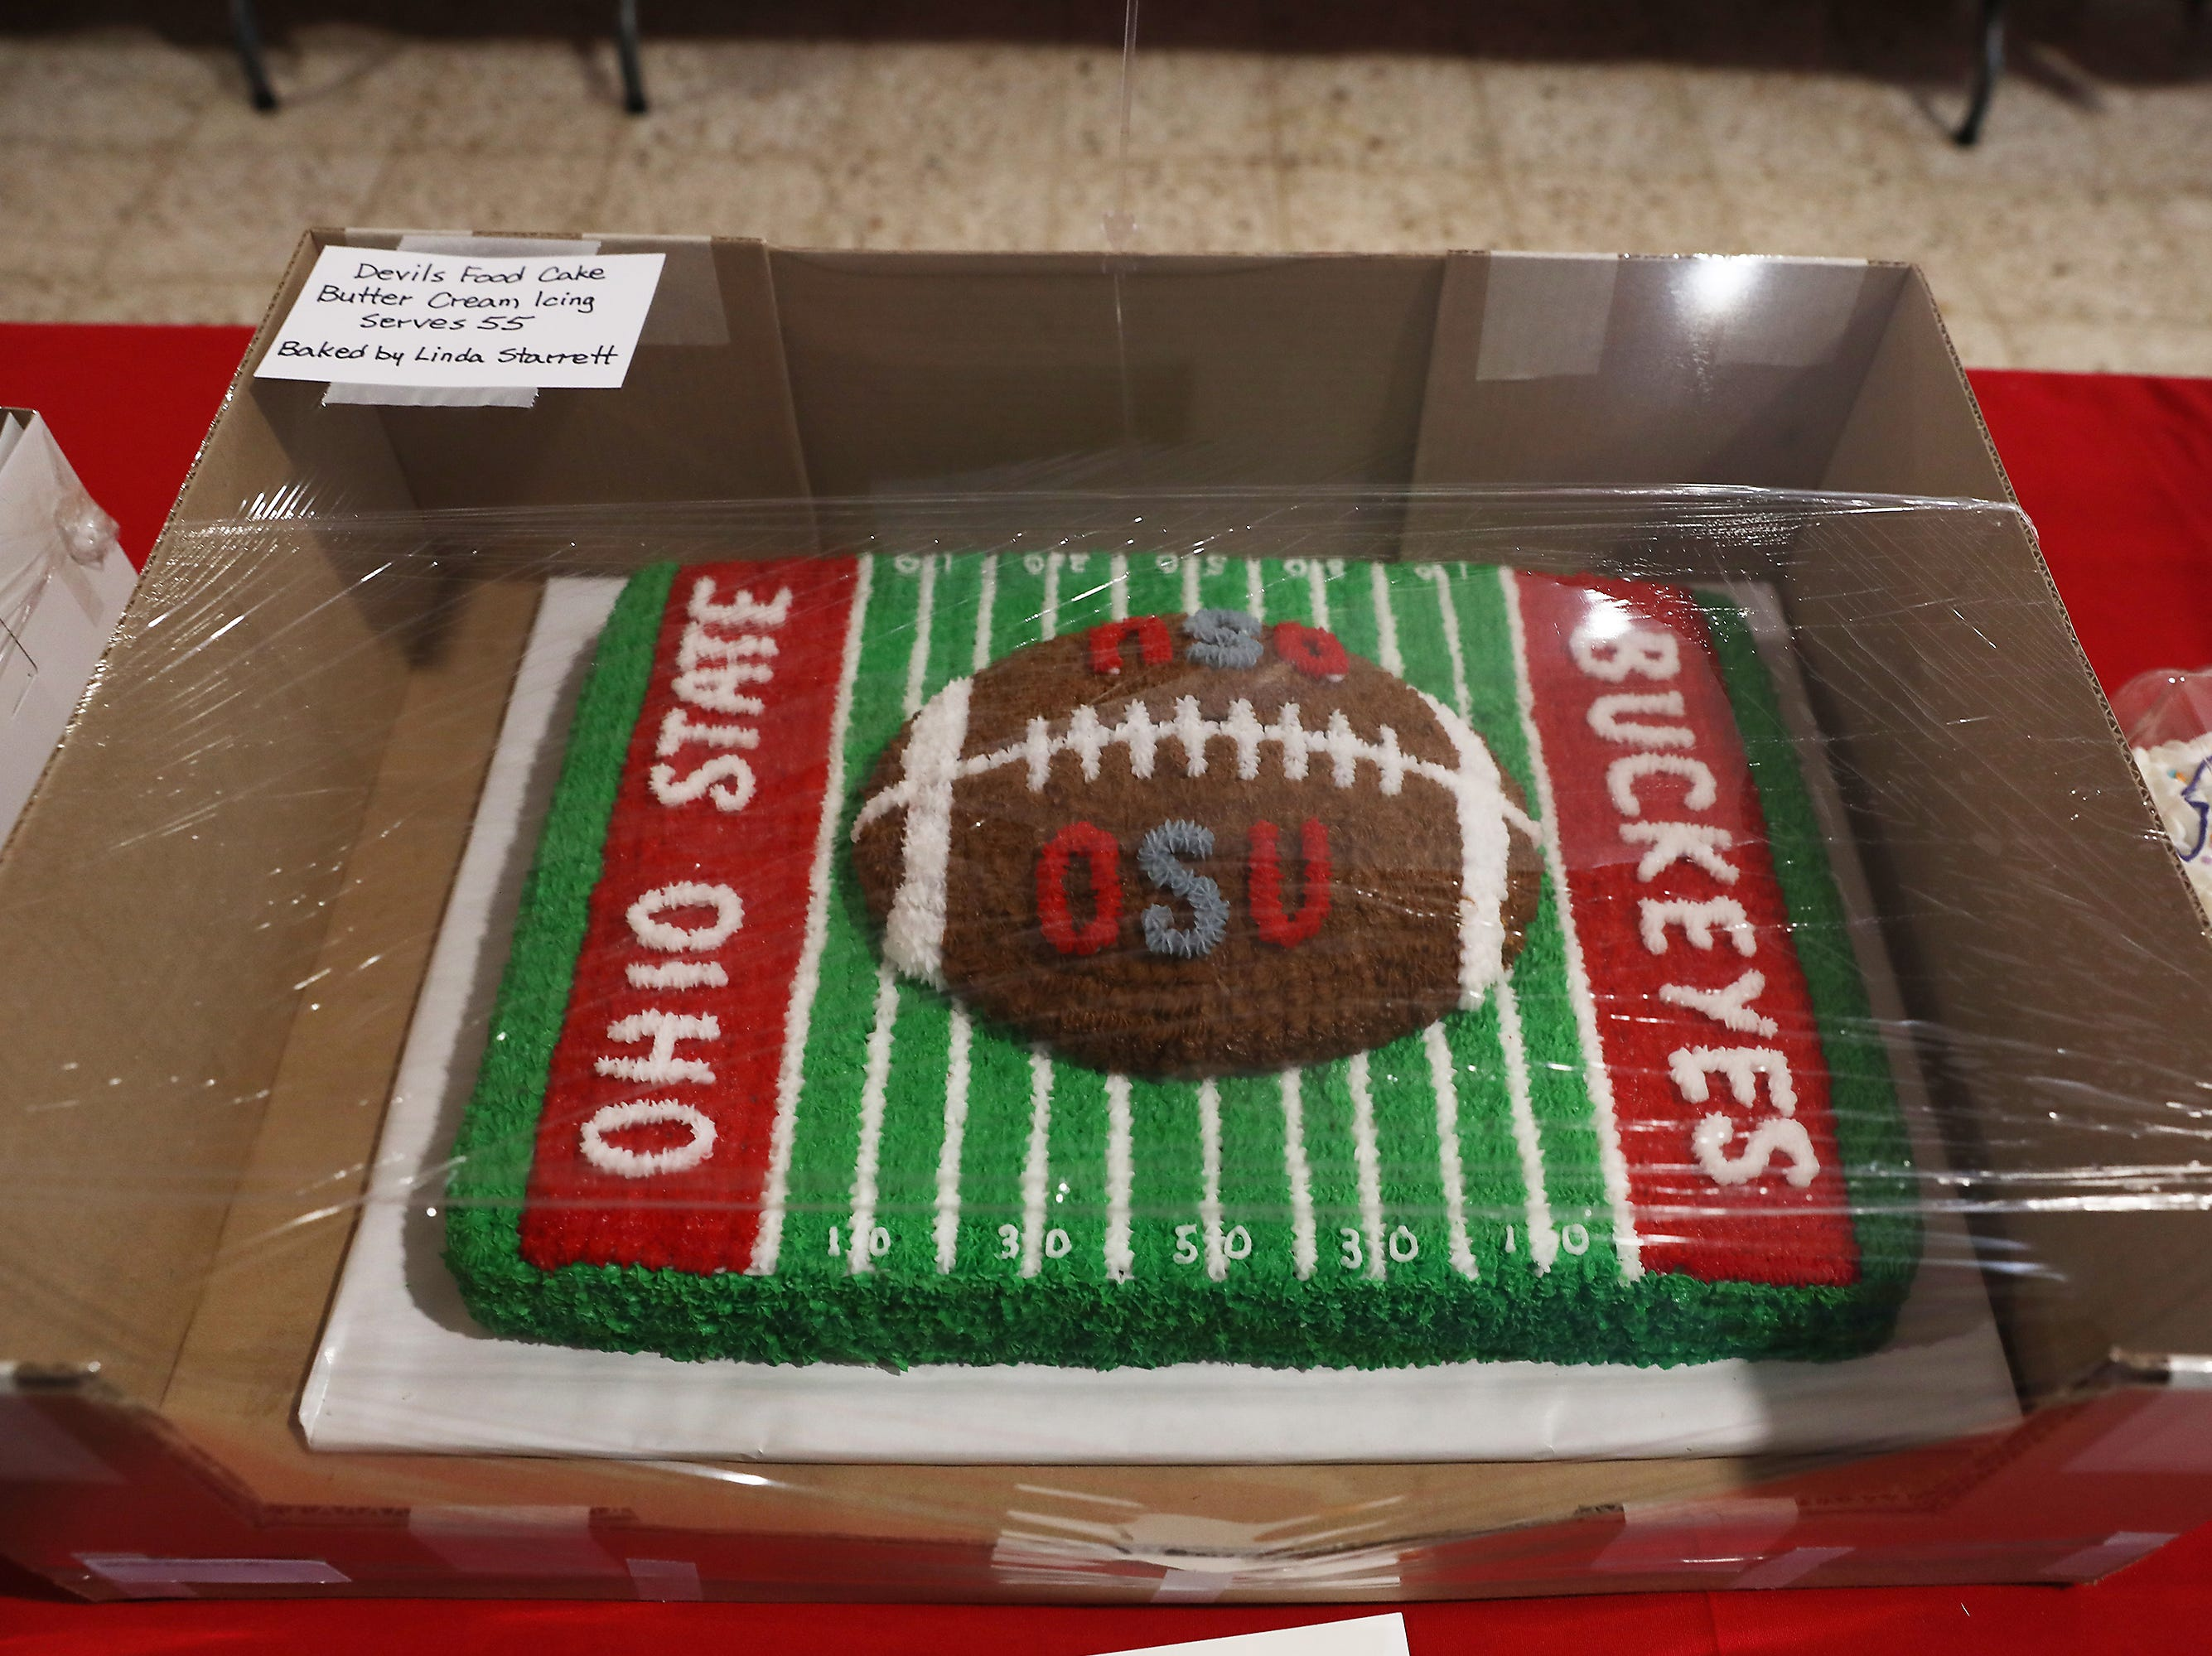 4:00 P.M. Thursday cake 165 Best Books by Taffy - 4 Ohio State Pre-Big 10 Basketball tickets; $140